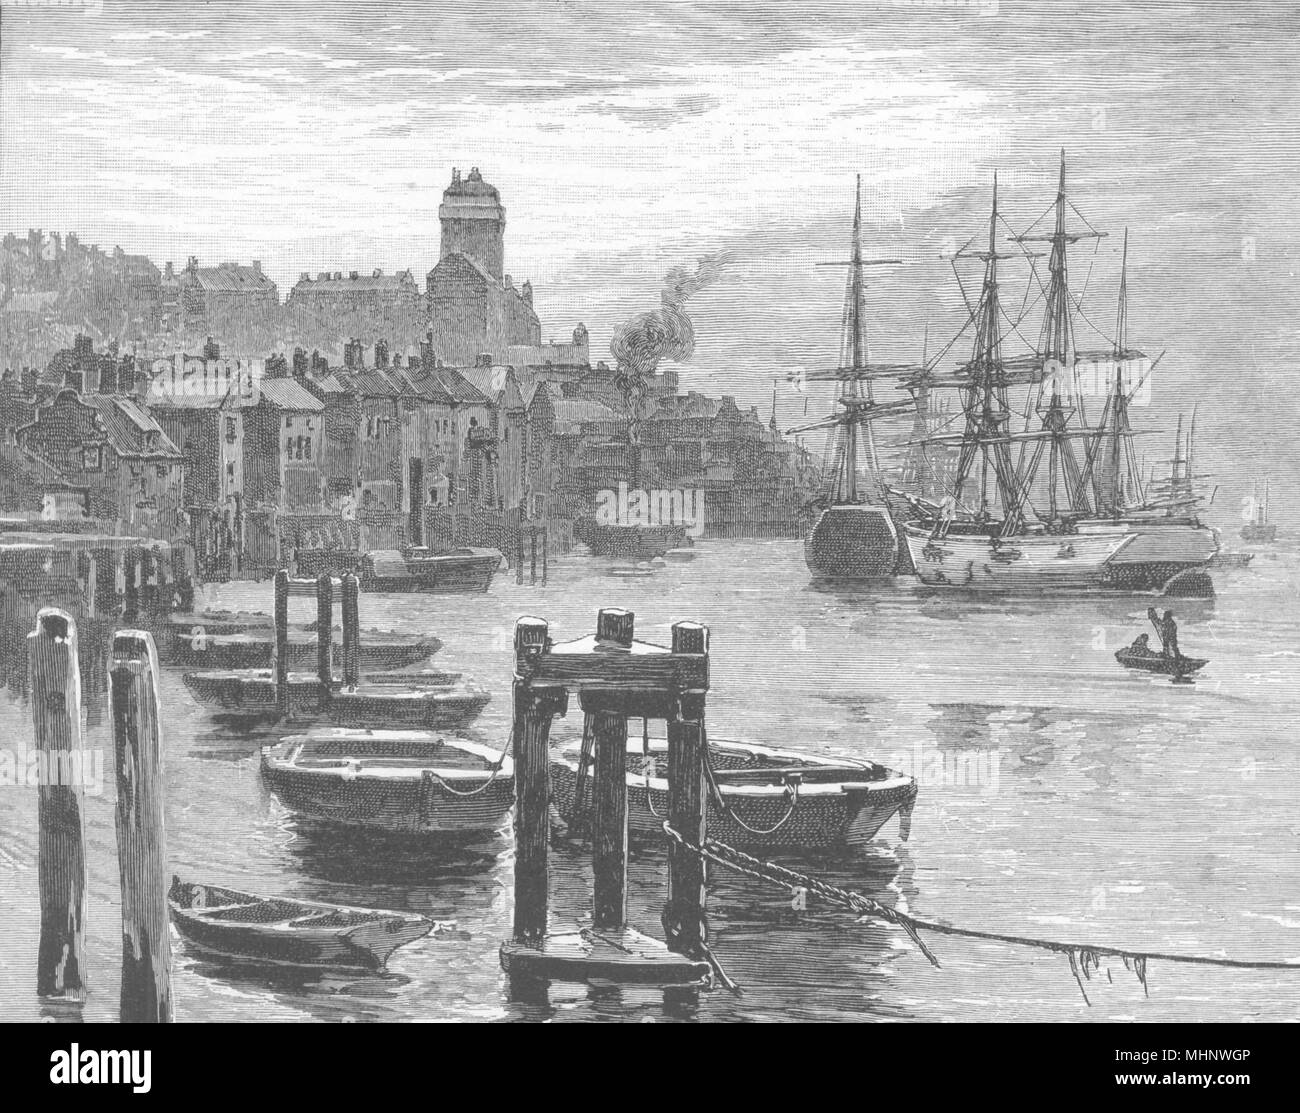 London 1901 Stockfotos & London 1901 Bilder - Seite 5 - Alamy